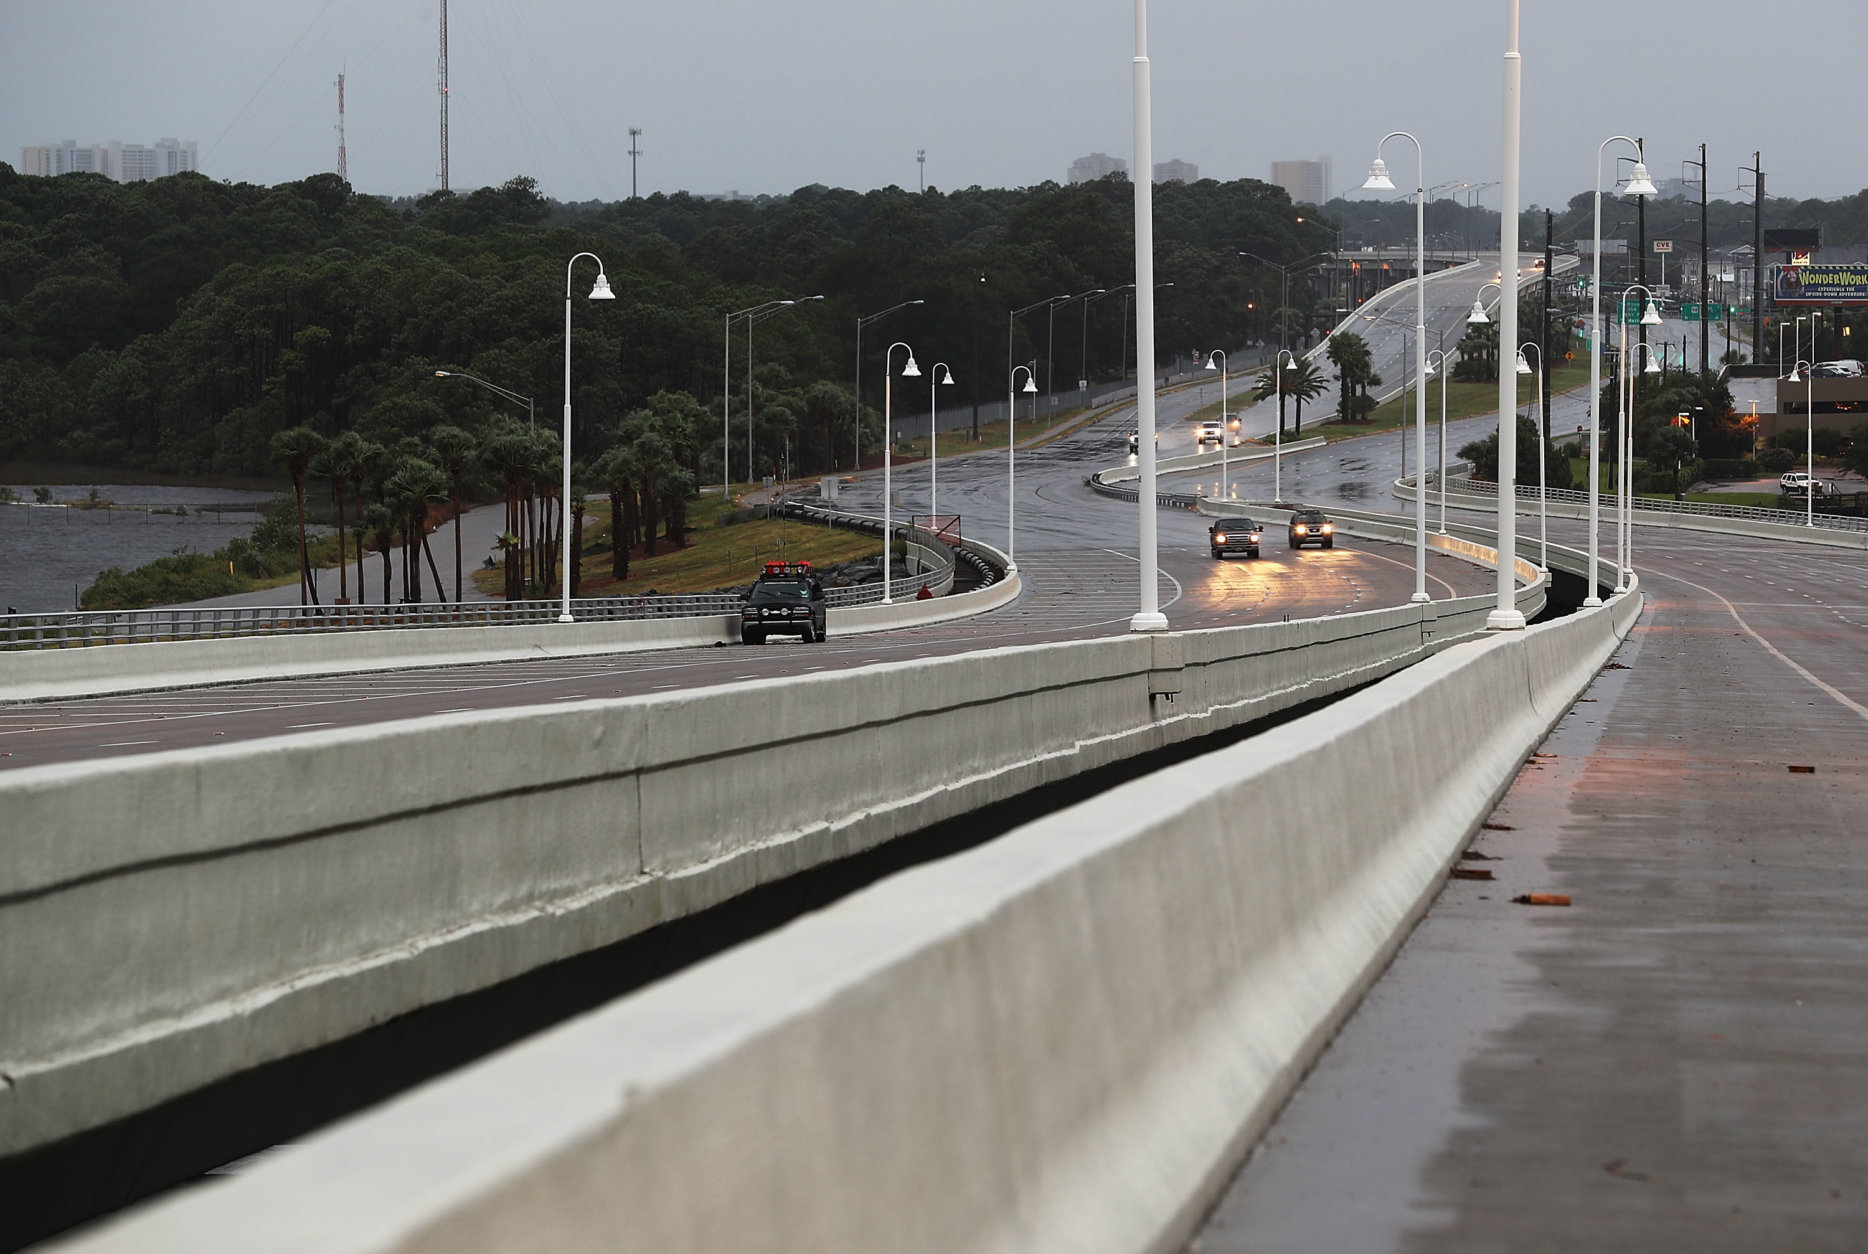 PANAMA CITY, FL - OCTOBER 10: A few cars drive along a bridge as the outerbands of  hurricane Michael arrive on October 10, 2018 in Panama City, Florida. The hurricane is forecast to hit the Florida Panhandle at a possible category 4 storm.  (Photo by Joe Raedle/Getty Images)